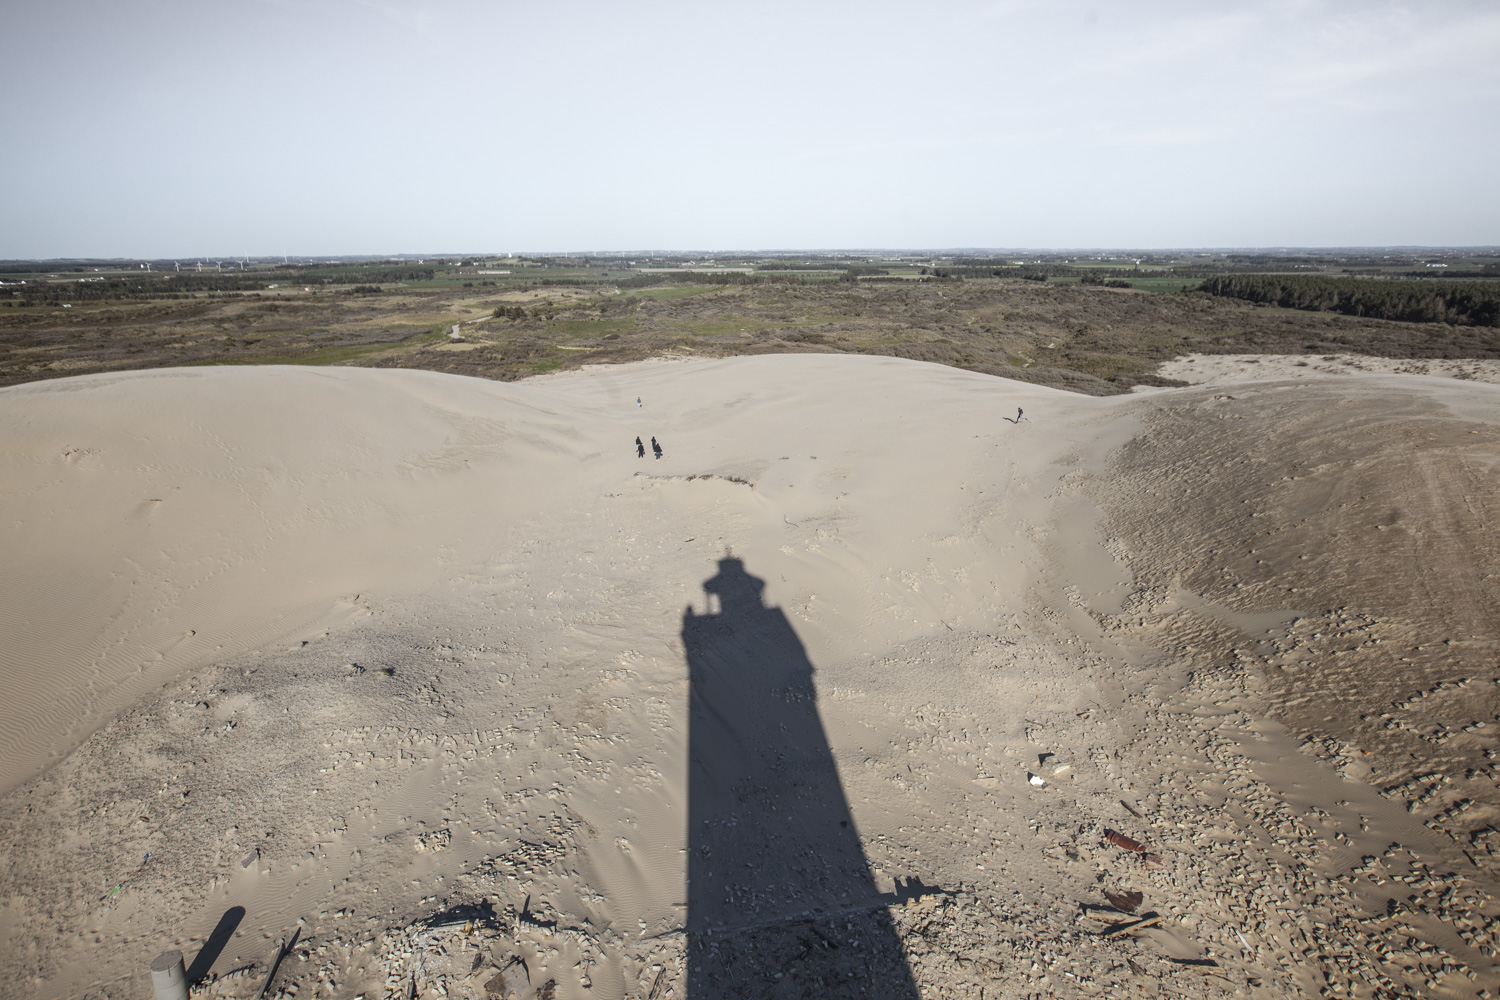 View from the lighthouse, looking east